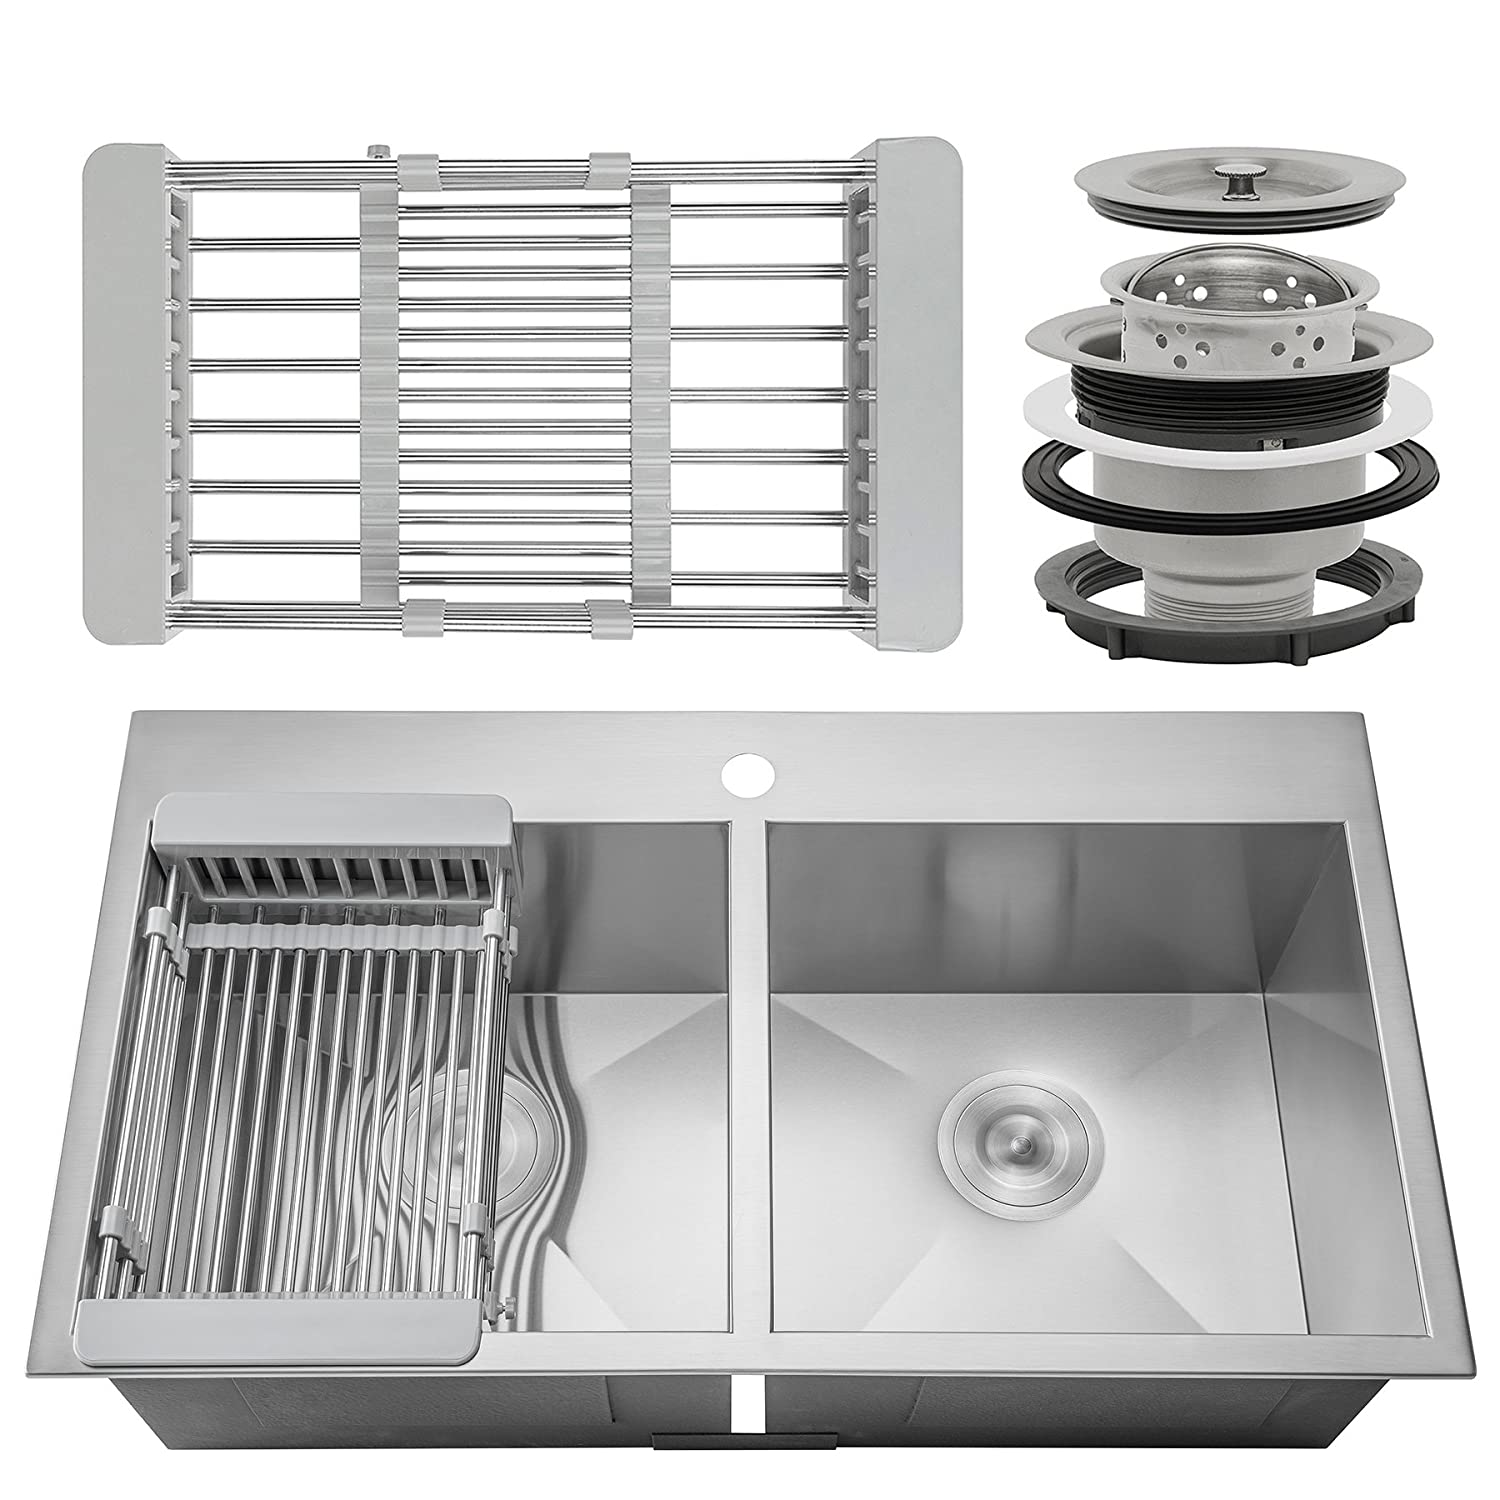 Firebird 32 x 18 x 9 Handmade 18 Gauge 50 50 Double Bowl Basin Topmount Drop-in Kitchen Sink w Adjustable Dish Tray Strainer